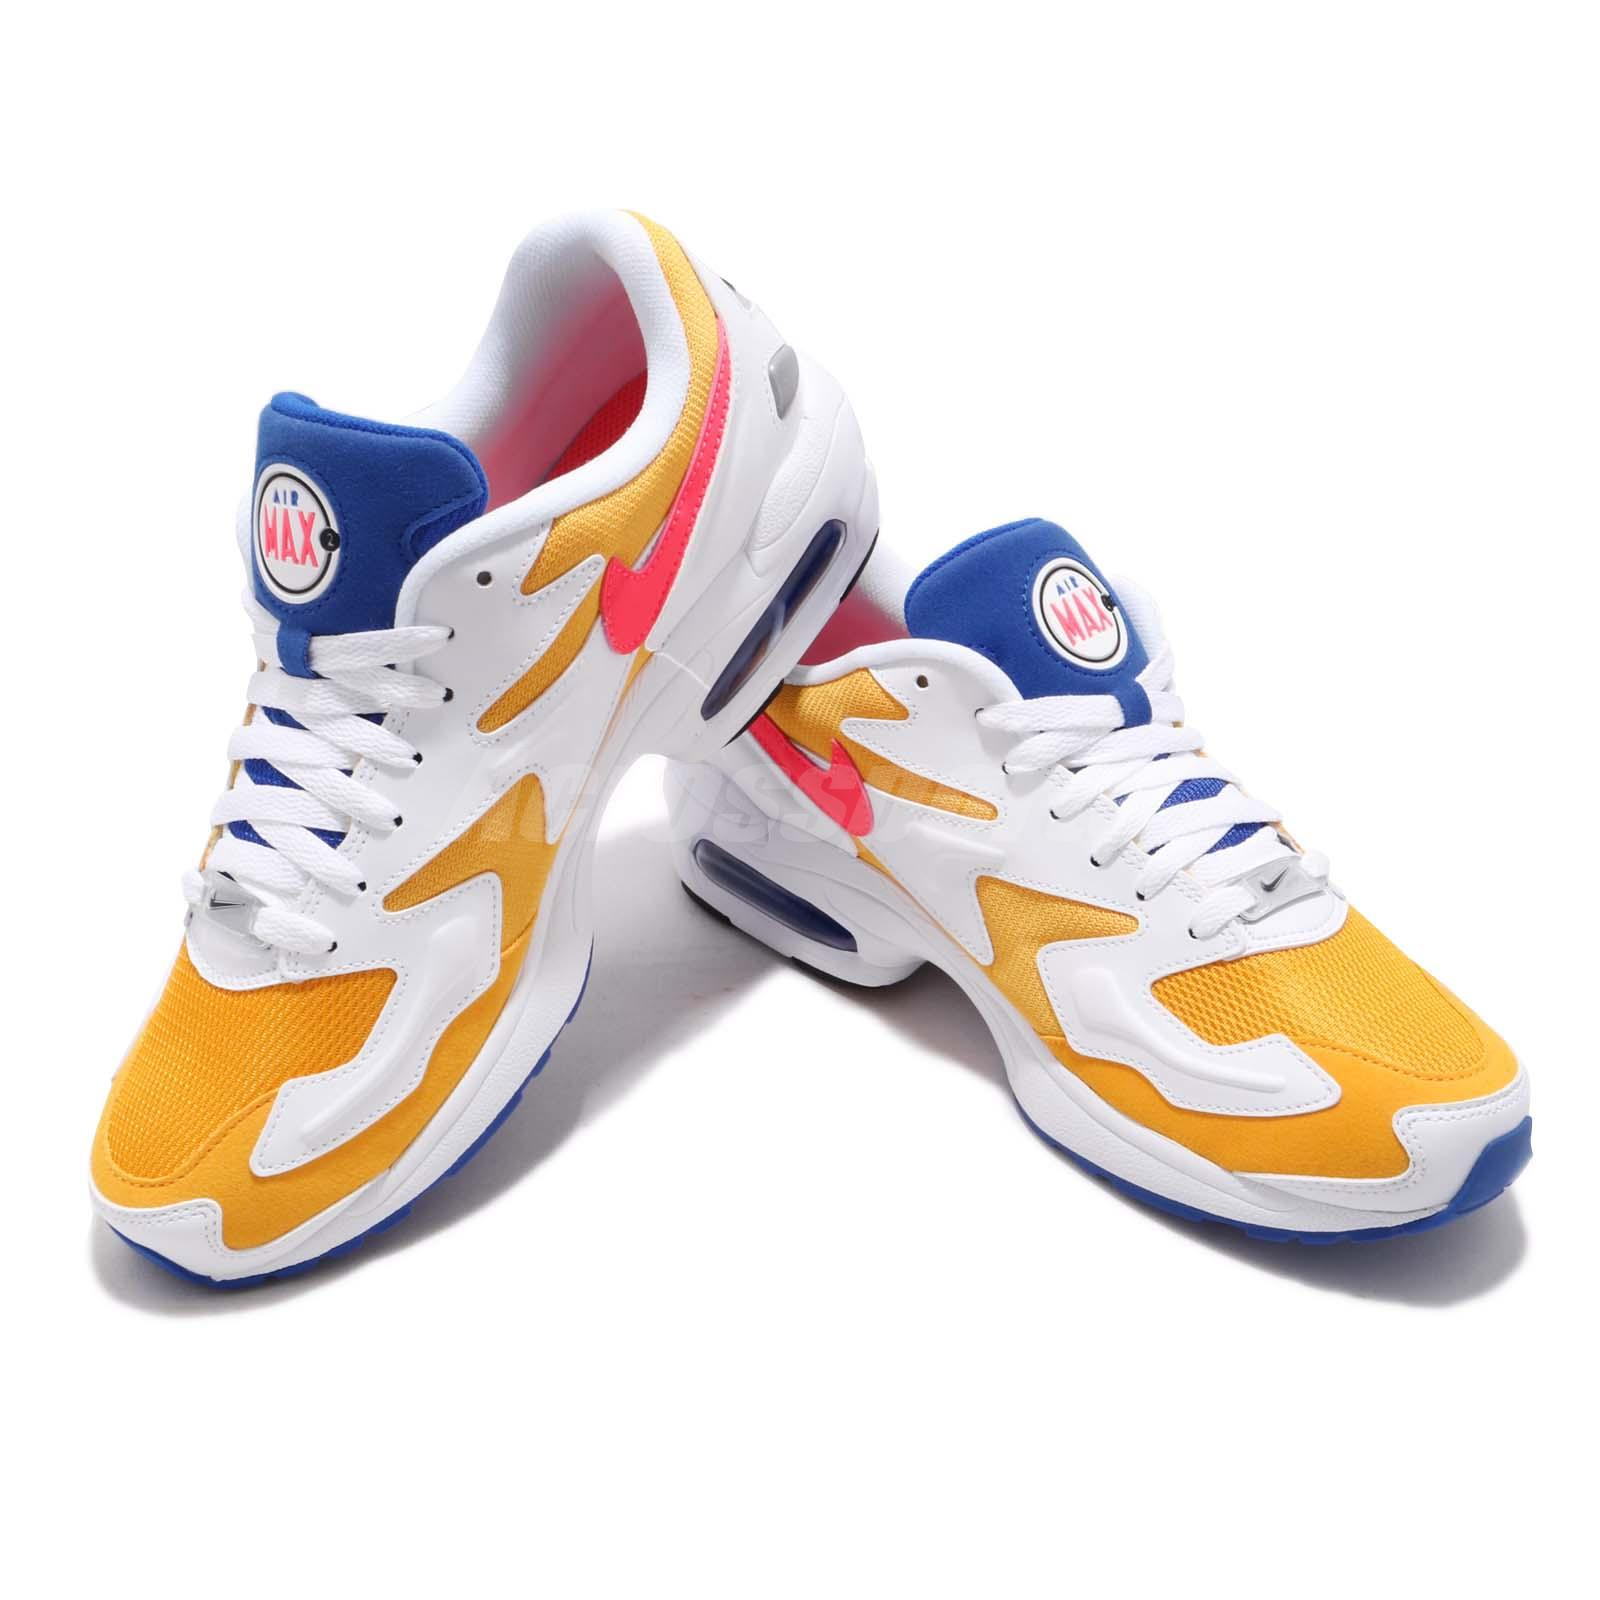 finest selection f9eff 7da73 Nike Air Max2 Light Gold Yellow Crimson Blue Mens Running Shoes NSW ...